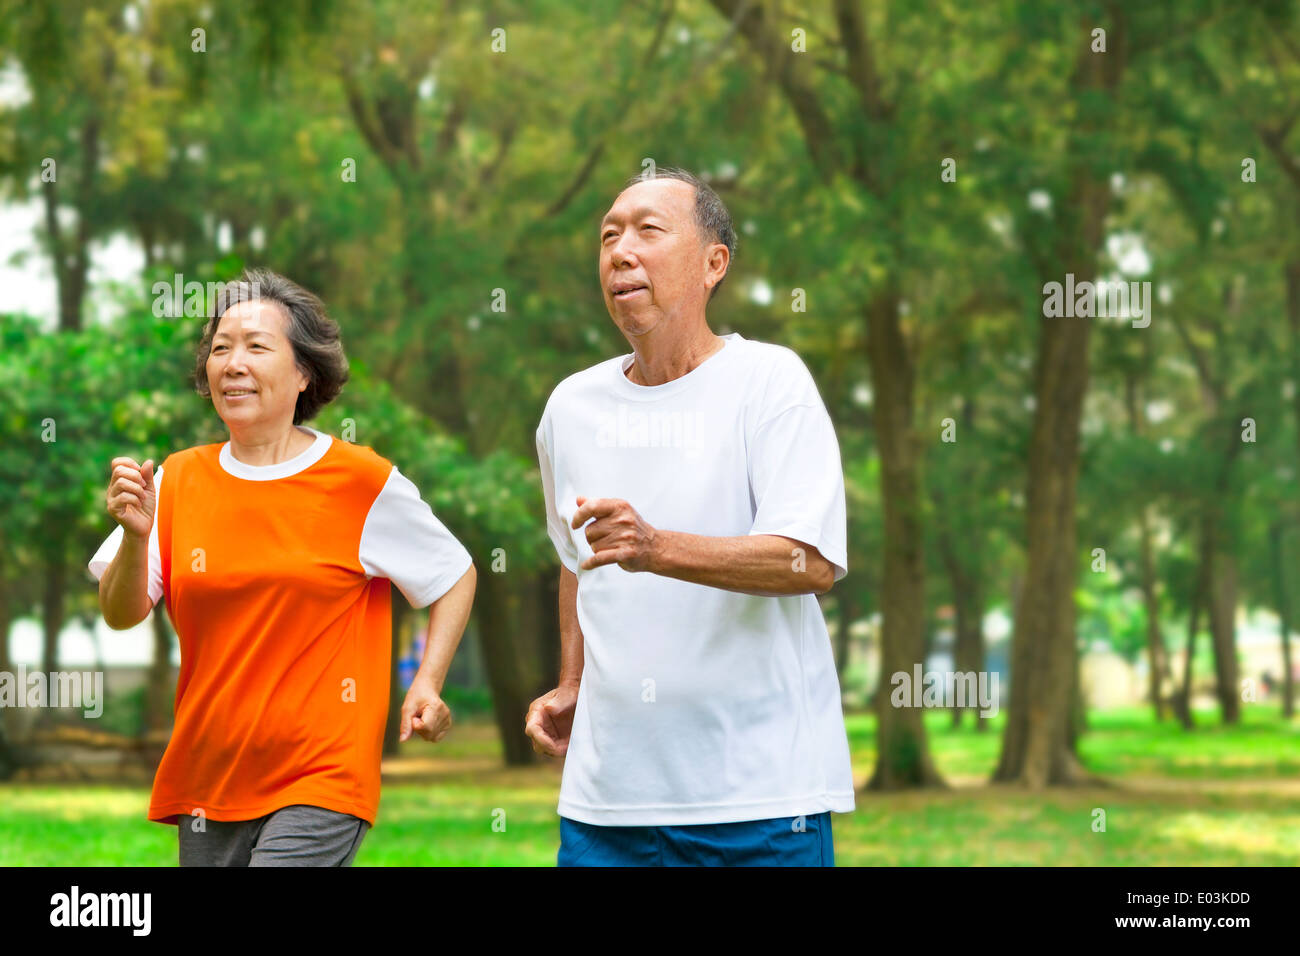 happy senior couple running together in the park - Stock Image